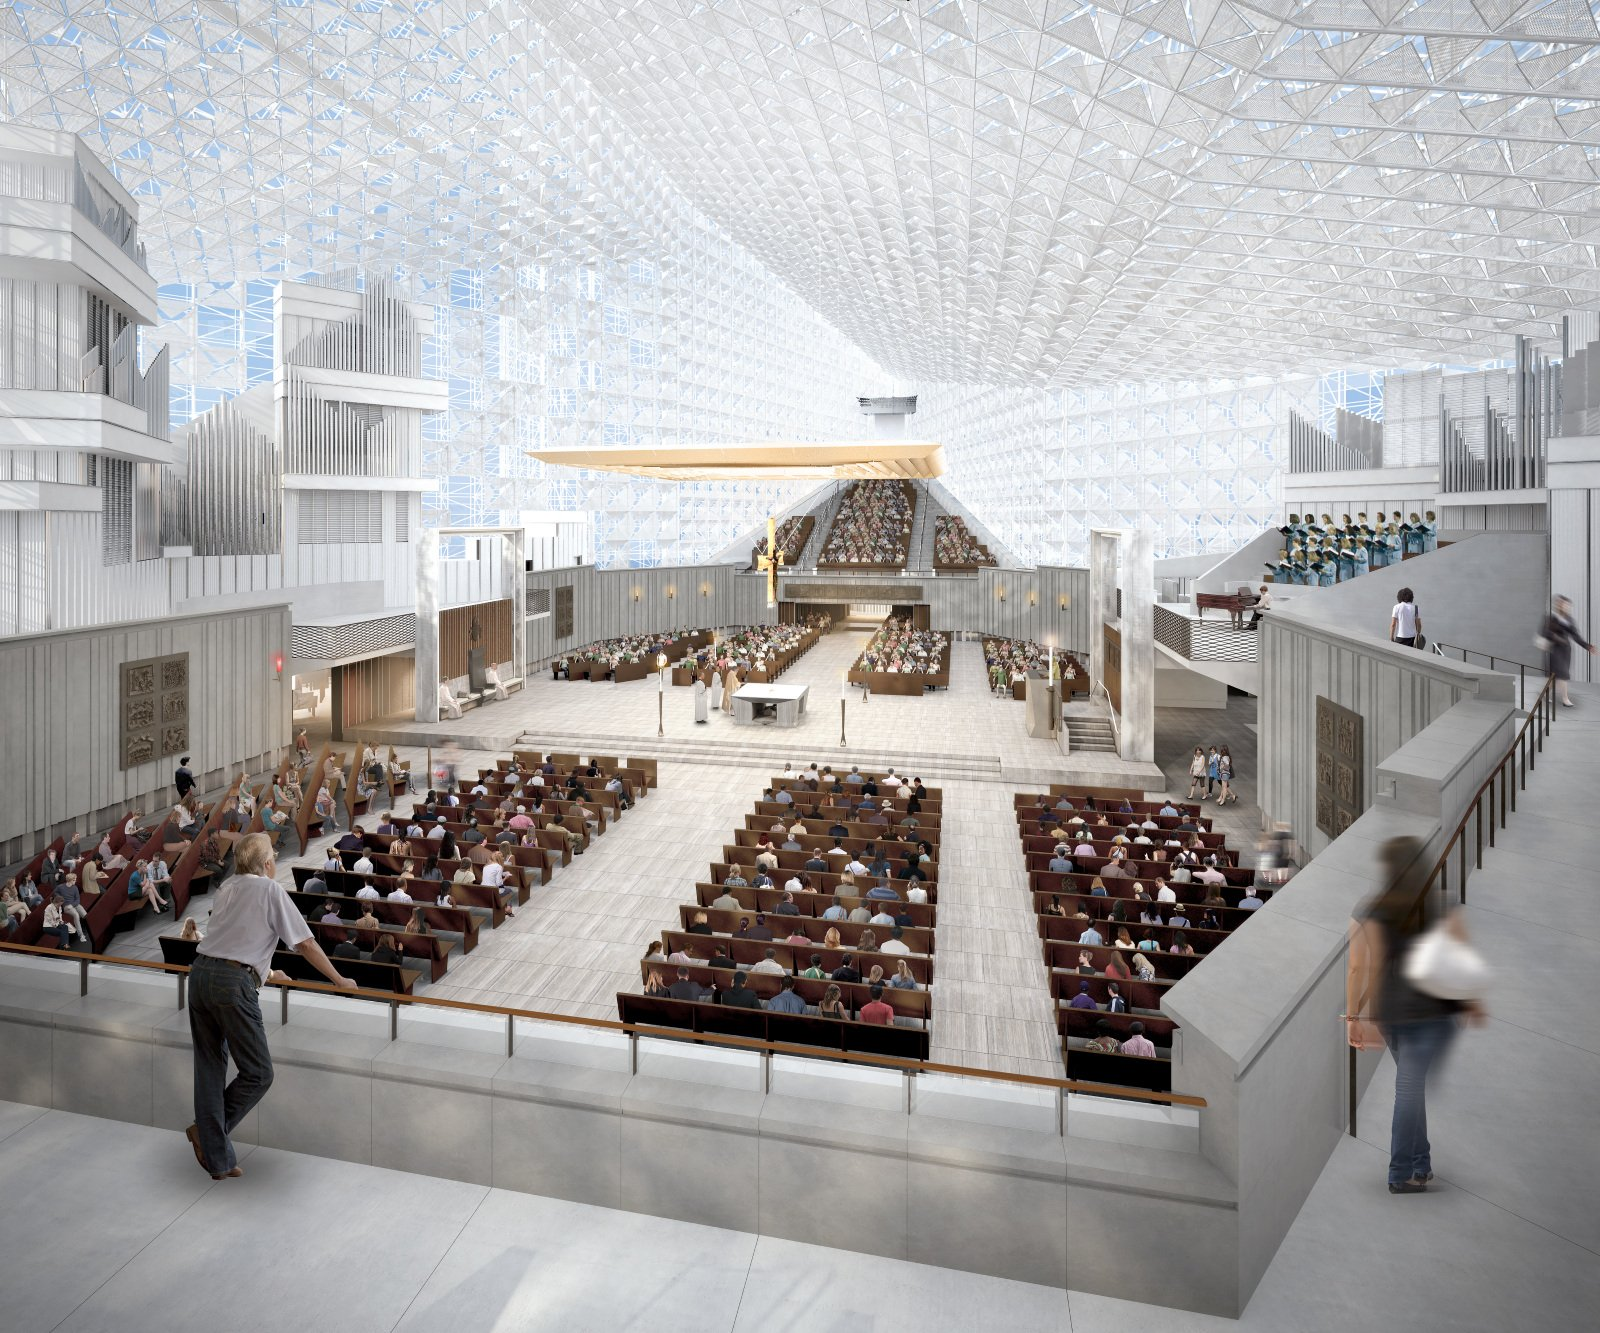 Look Inside: The transformation of the Crystal Cathedral